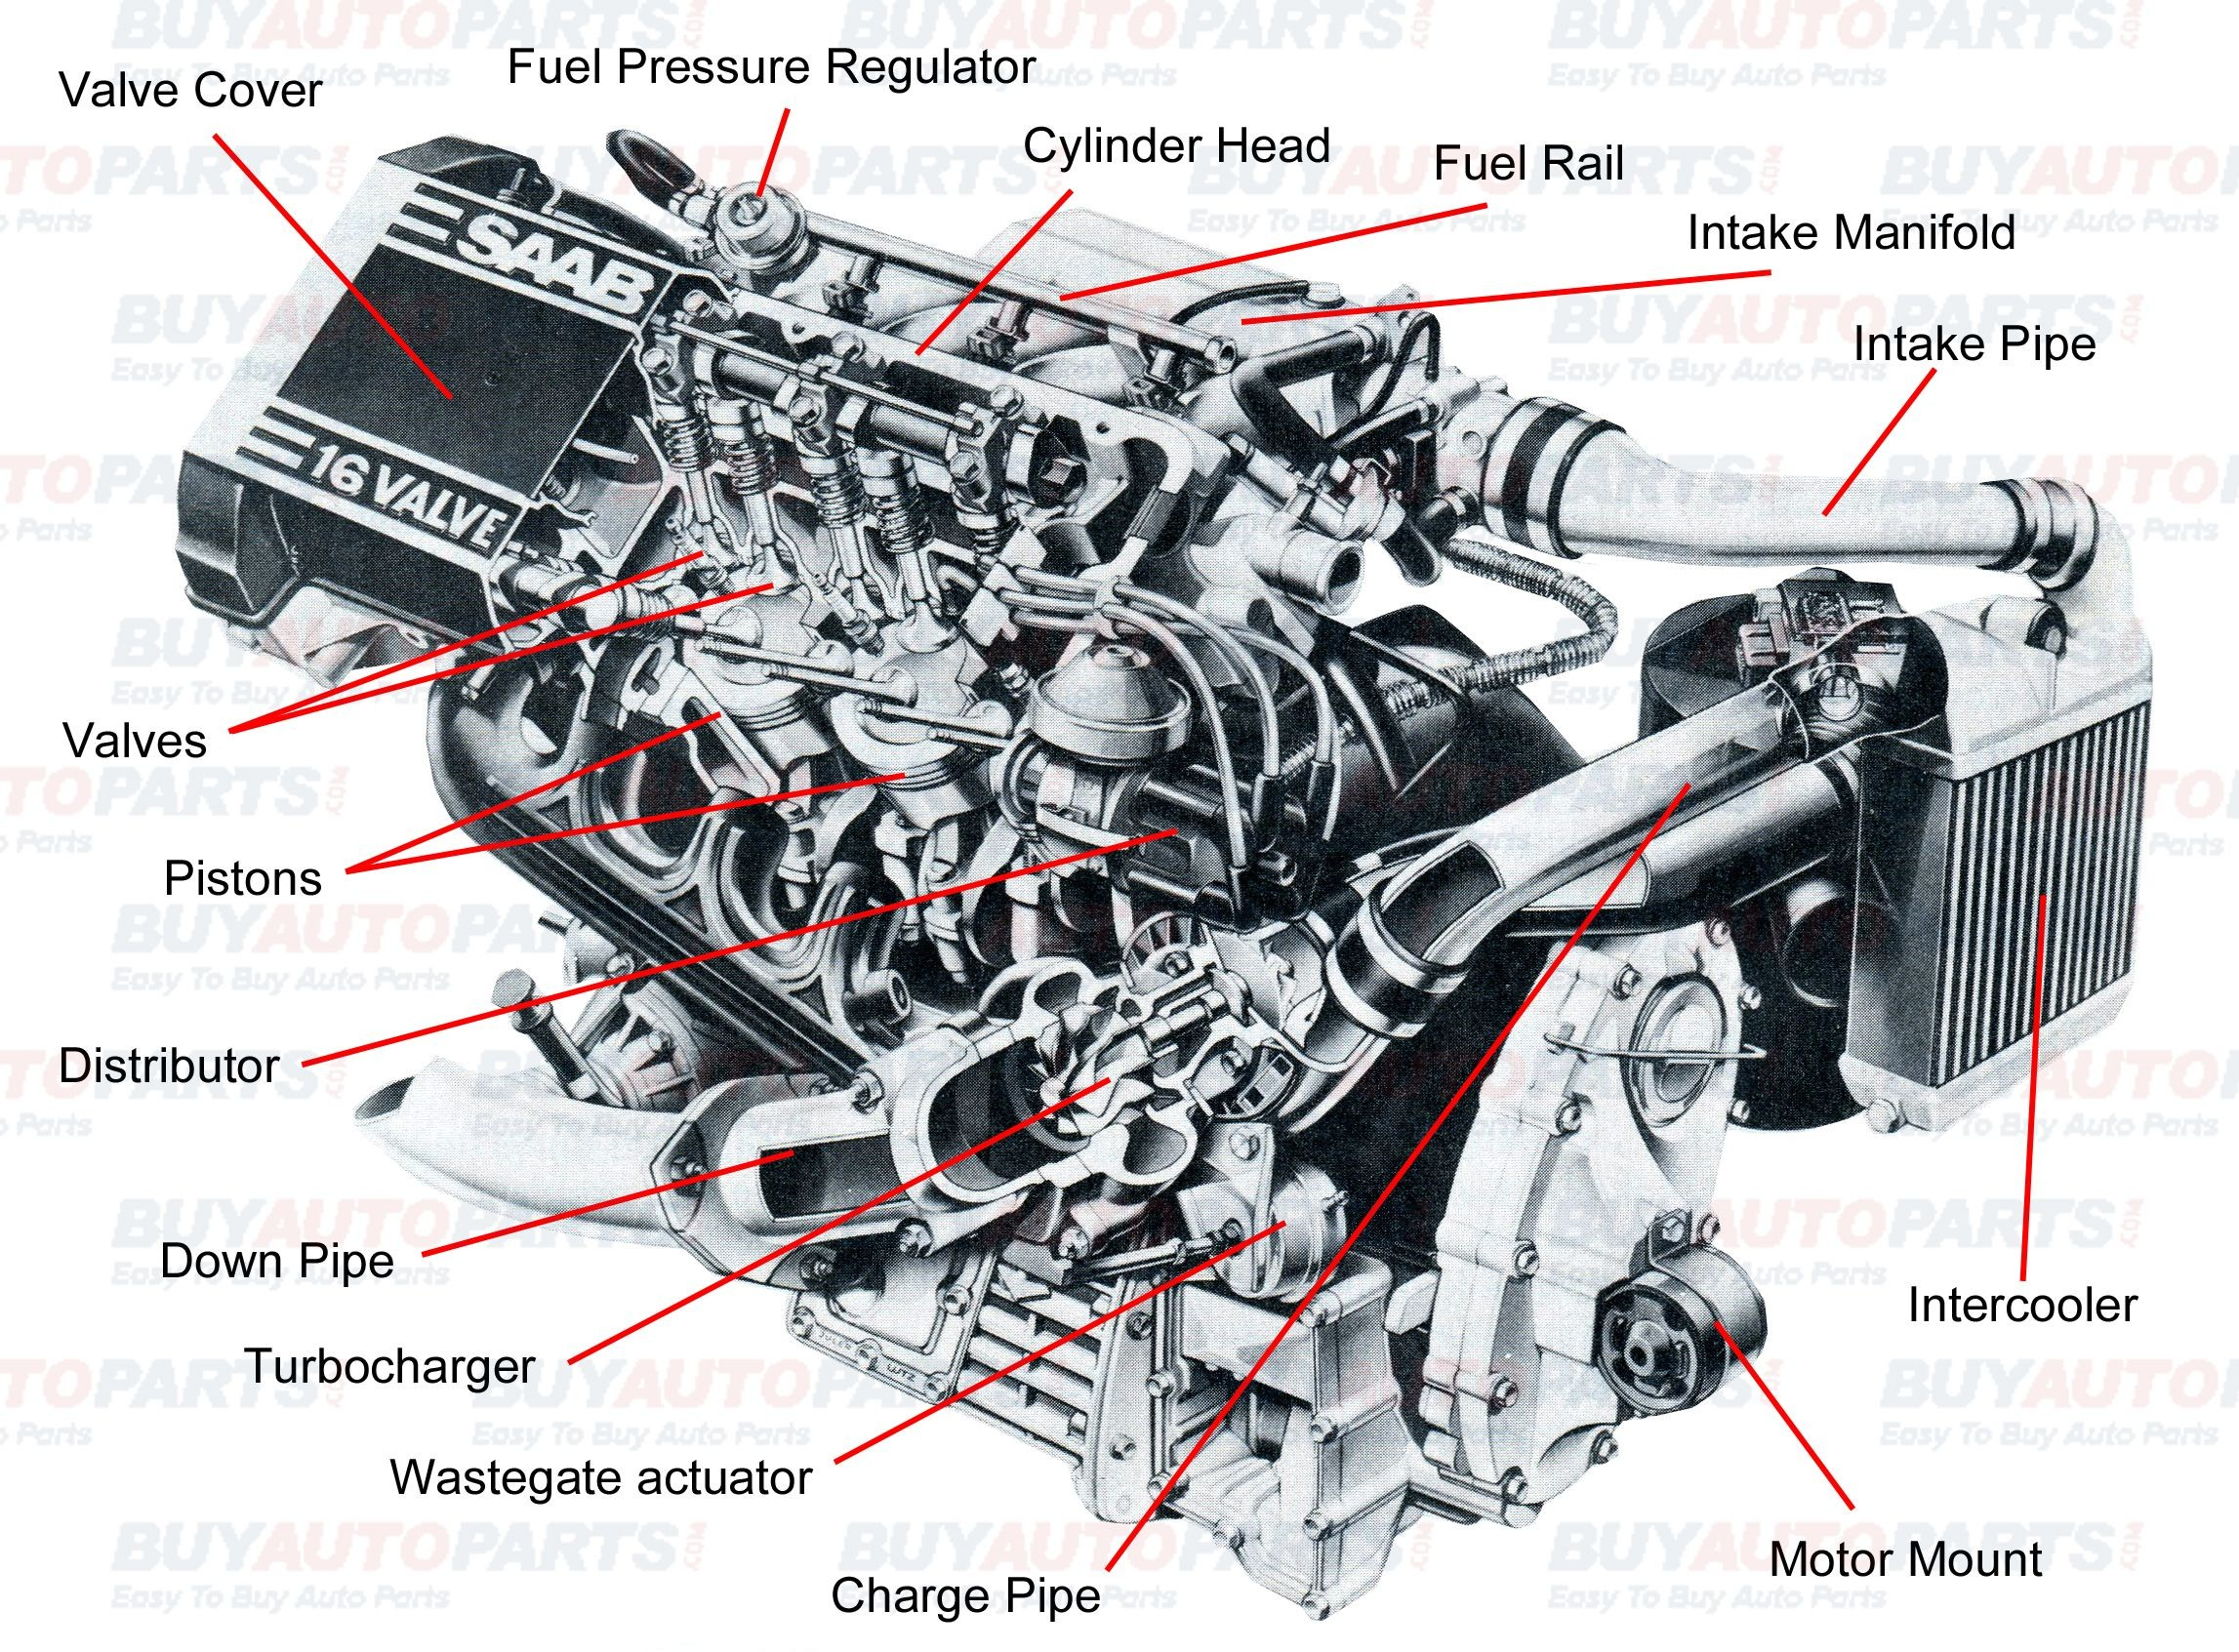 Engine Turbo Diagram Pin by Jimmiejanet Testellamwfz On What Does An Engine with Turbo Of Engine Turbo Diagram